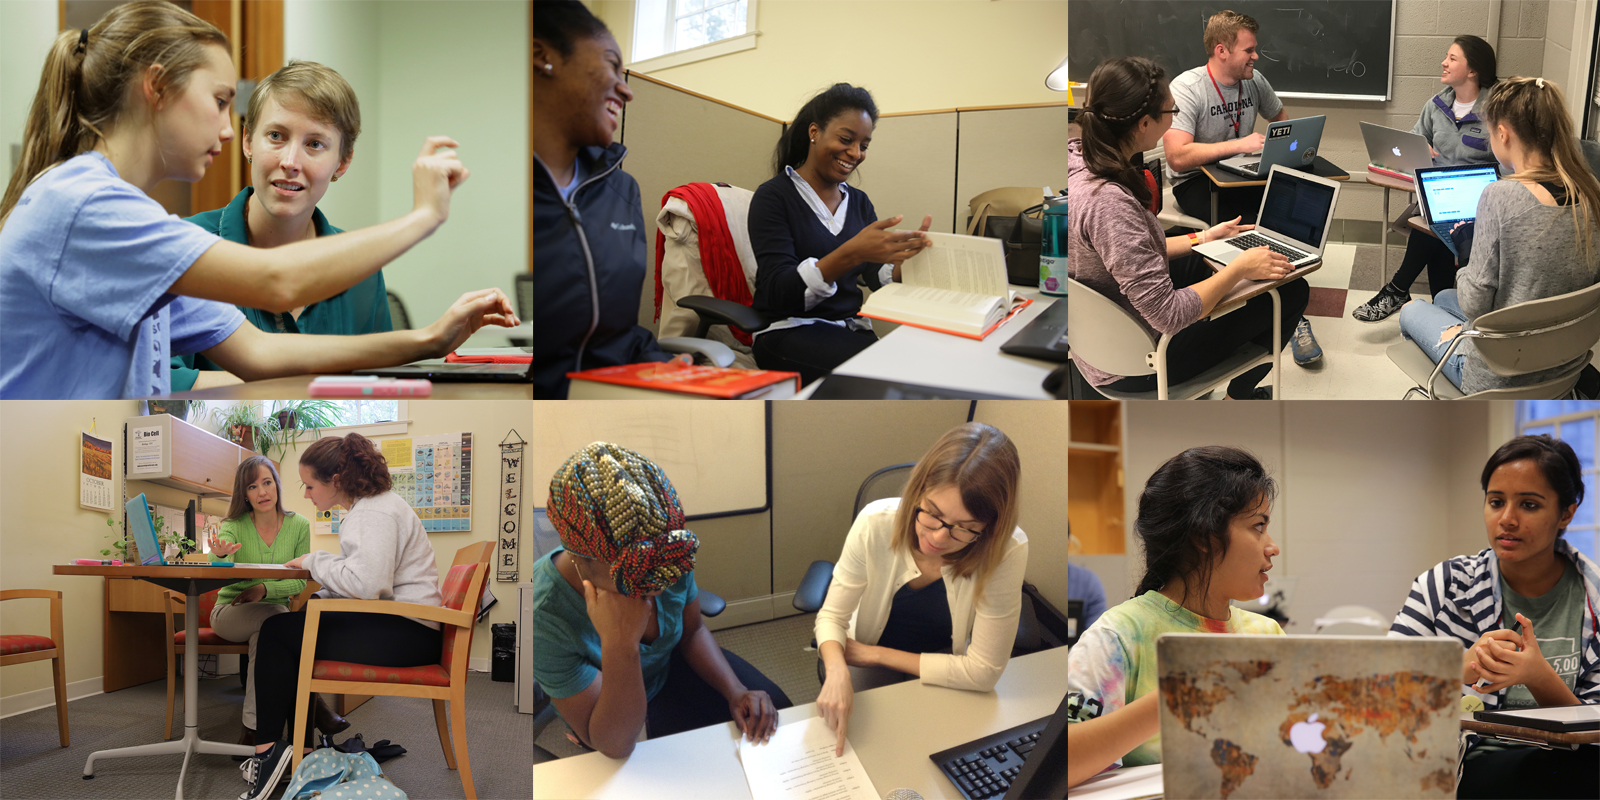 Collage of staff working with students.